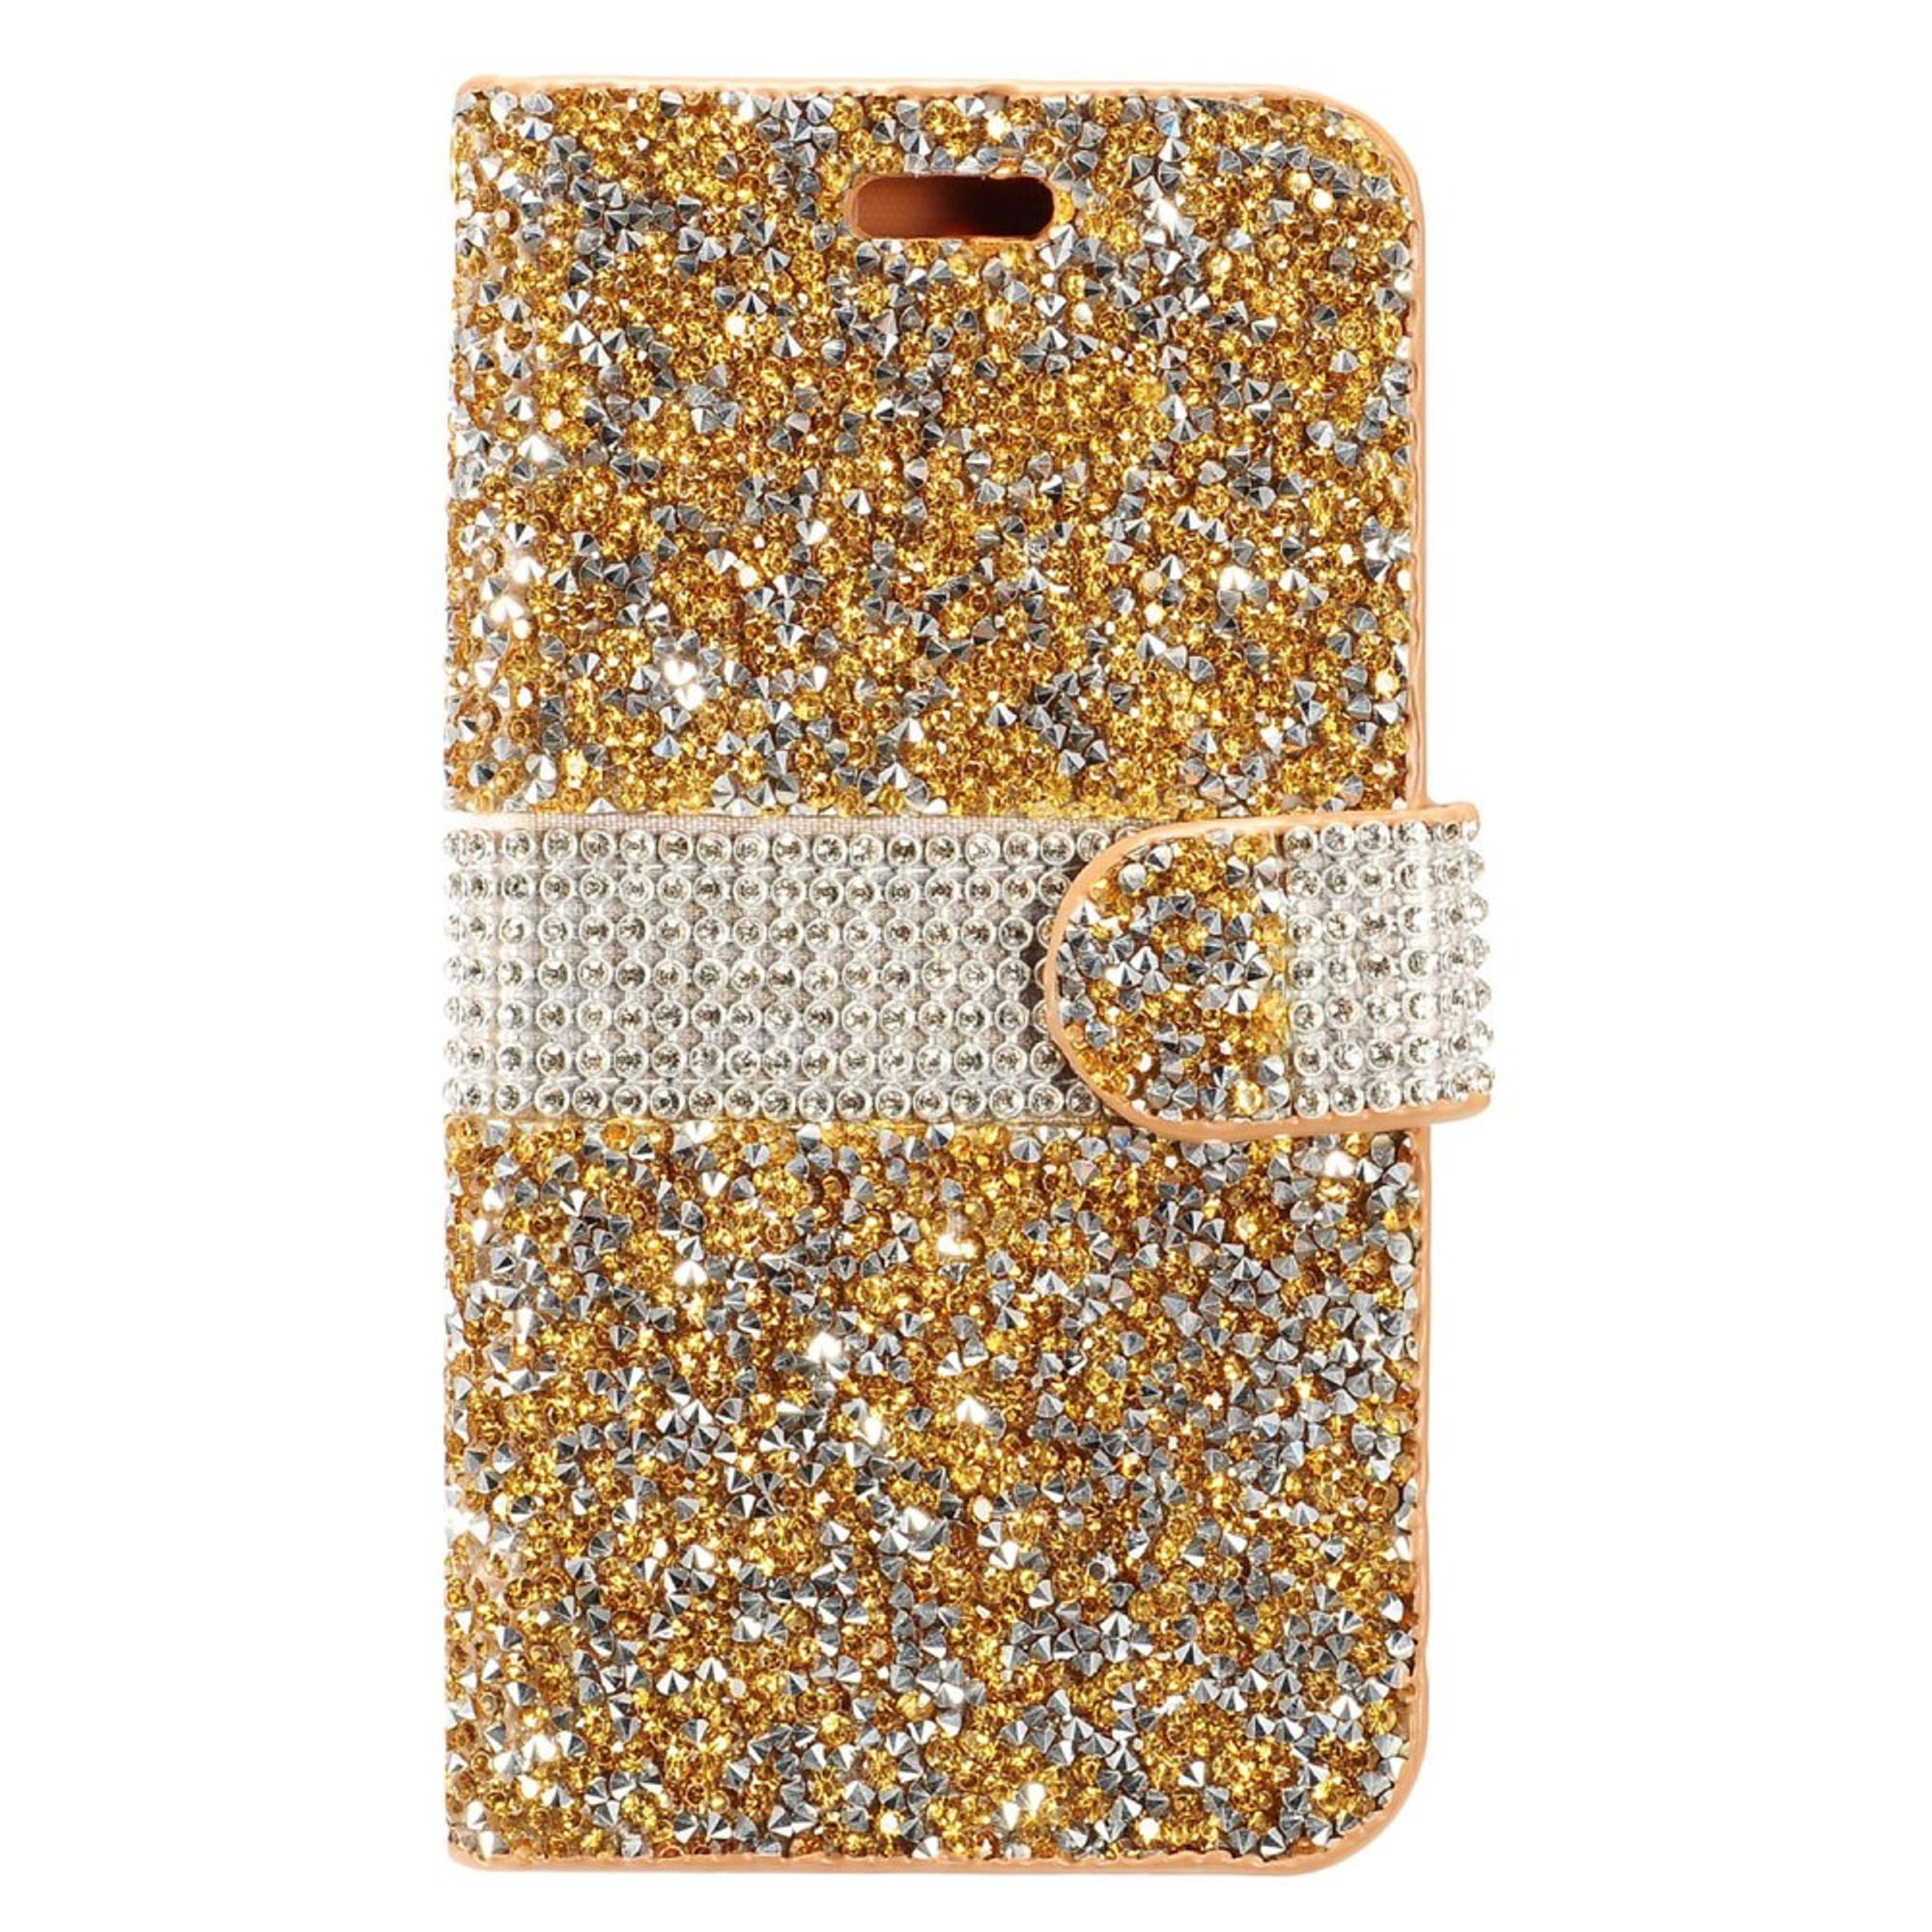 Samsung Galaxy Note 8 Case, by Insten Folio Flip Rhinestone Diamond Bling Leather Wallet Flap Pouch Case Cover for Samsung Galaxy Note 8